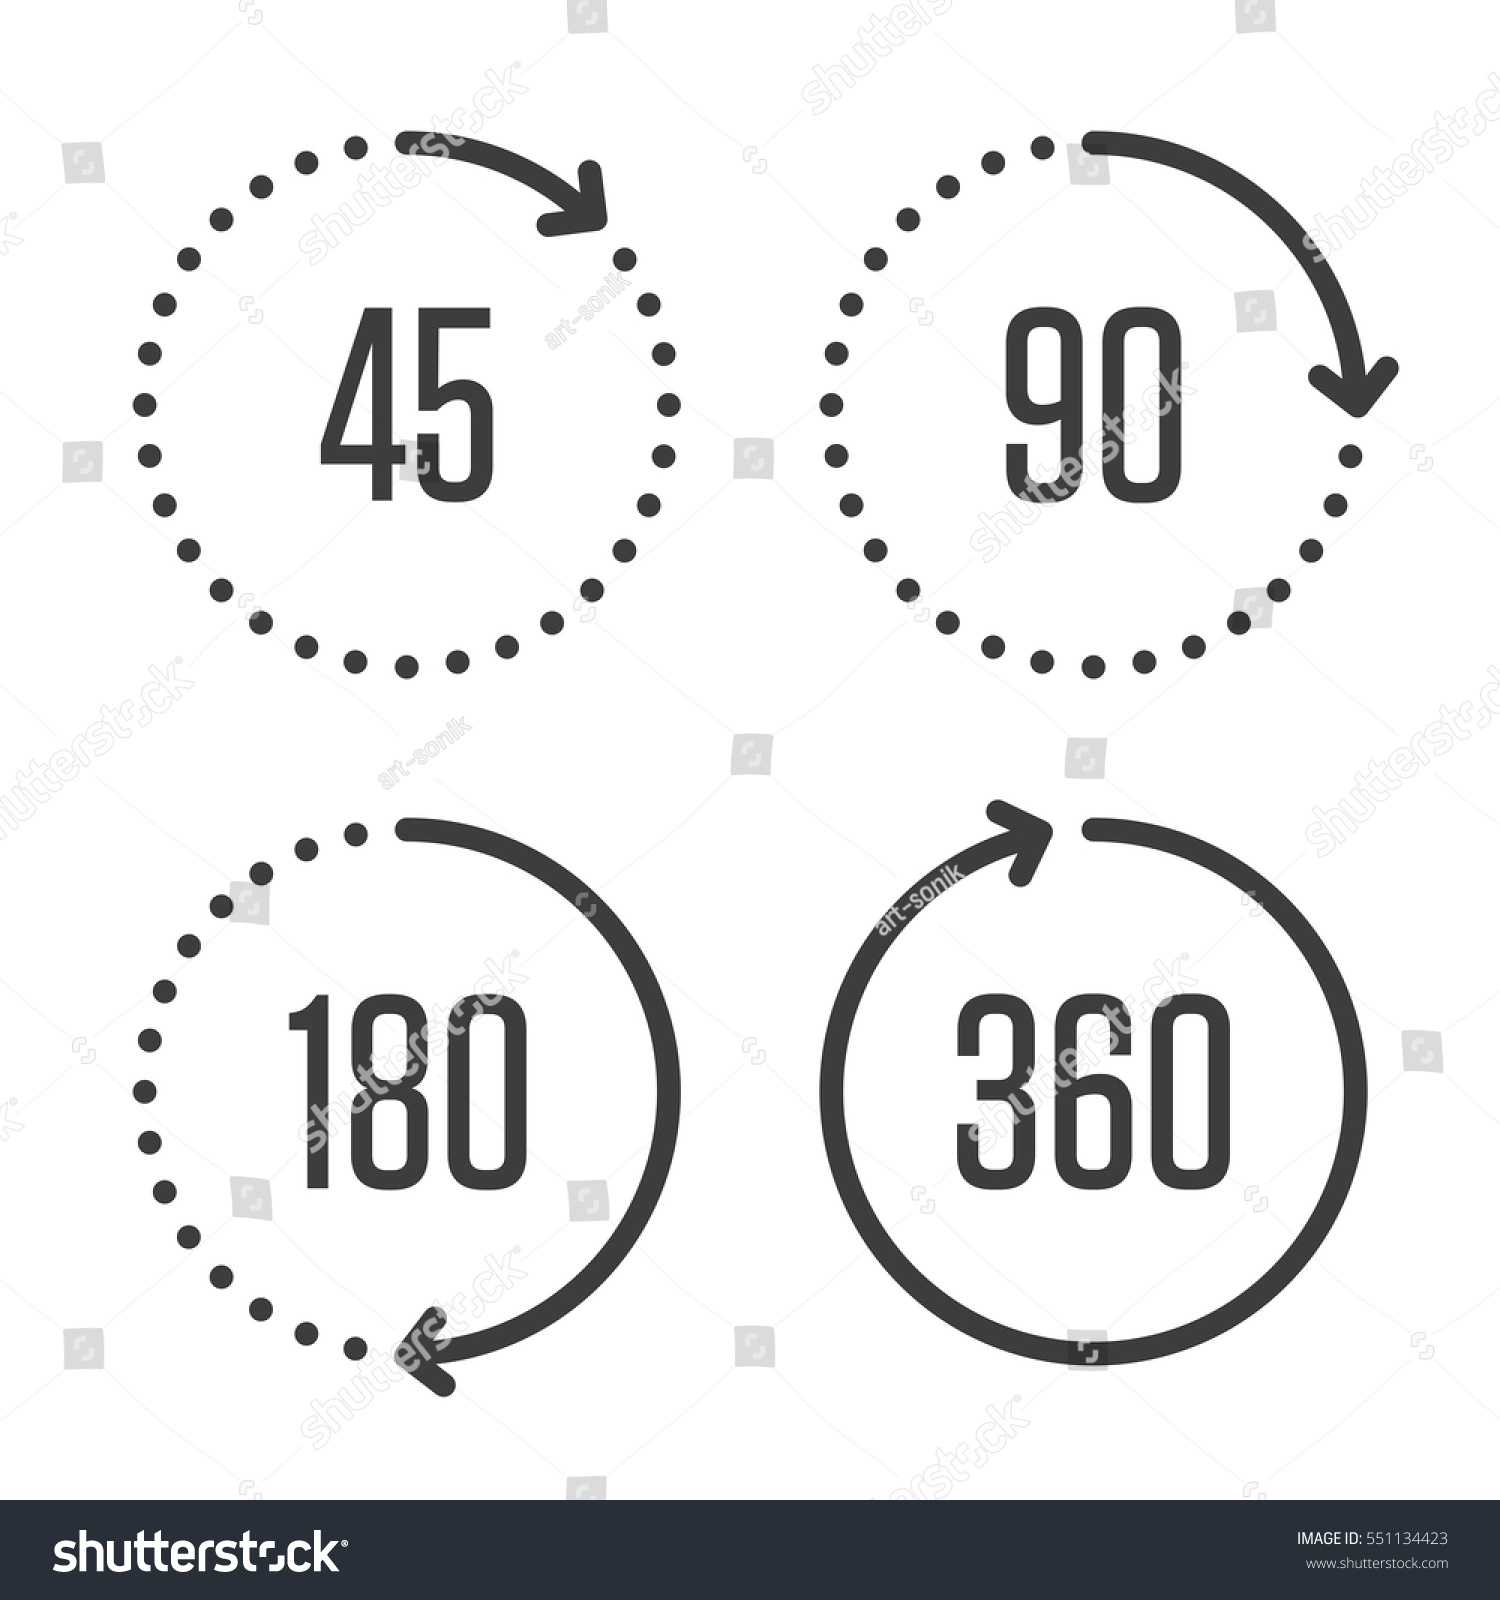 Set Angles 45 90 180 360 Stock Vector Royalty Free 551134423 Degree Compass Diagram Of And Degrees Icons Arrows Rotation Circle